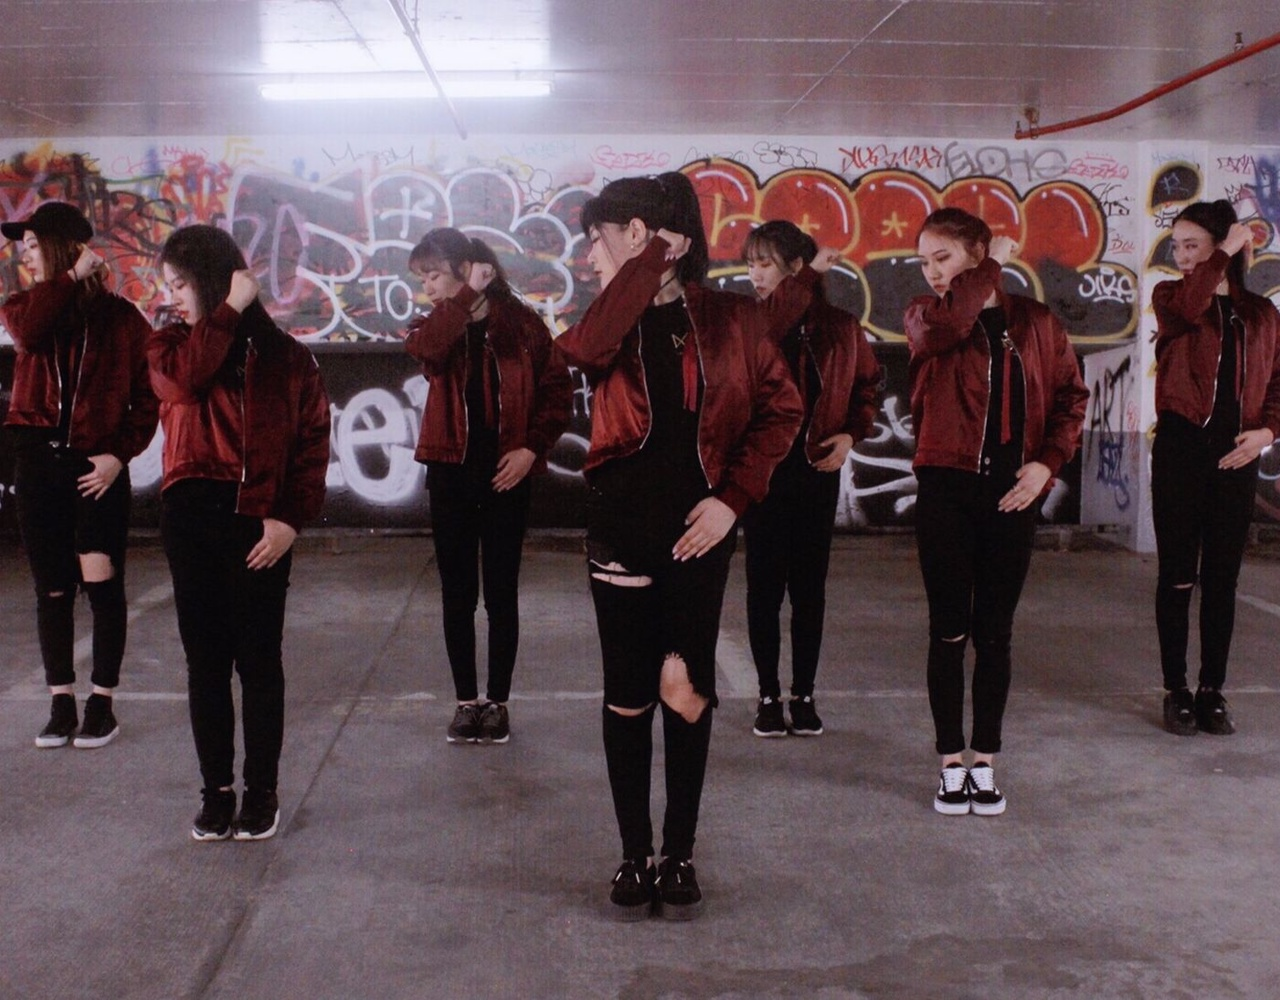 GOT7 - Never Ever 翻跳 Dance Cover by I AM Crew